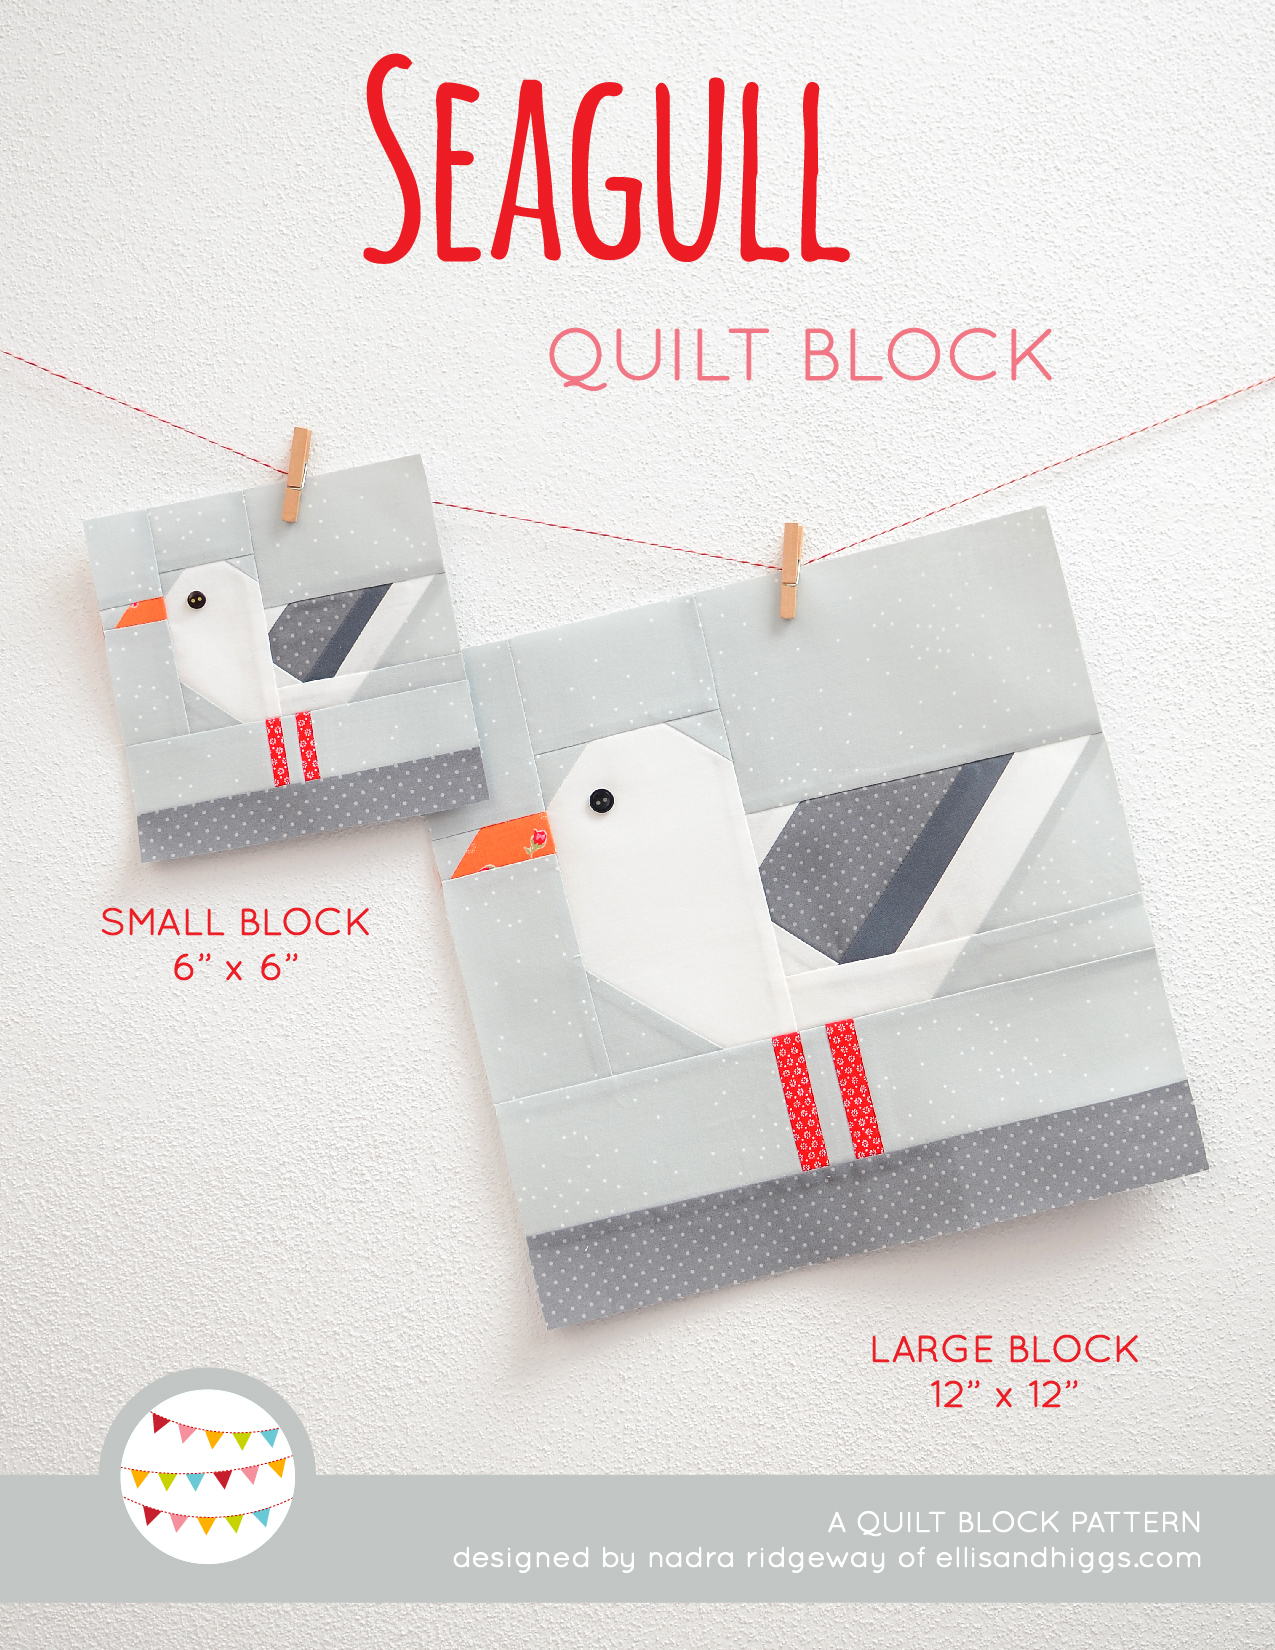 Nautical Embroidery Patterns New Nautical Quilt Patterns Seagull Quilt Block Pattern Ellis Higgs